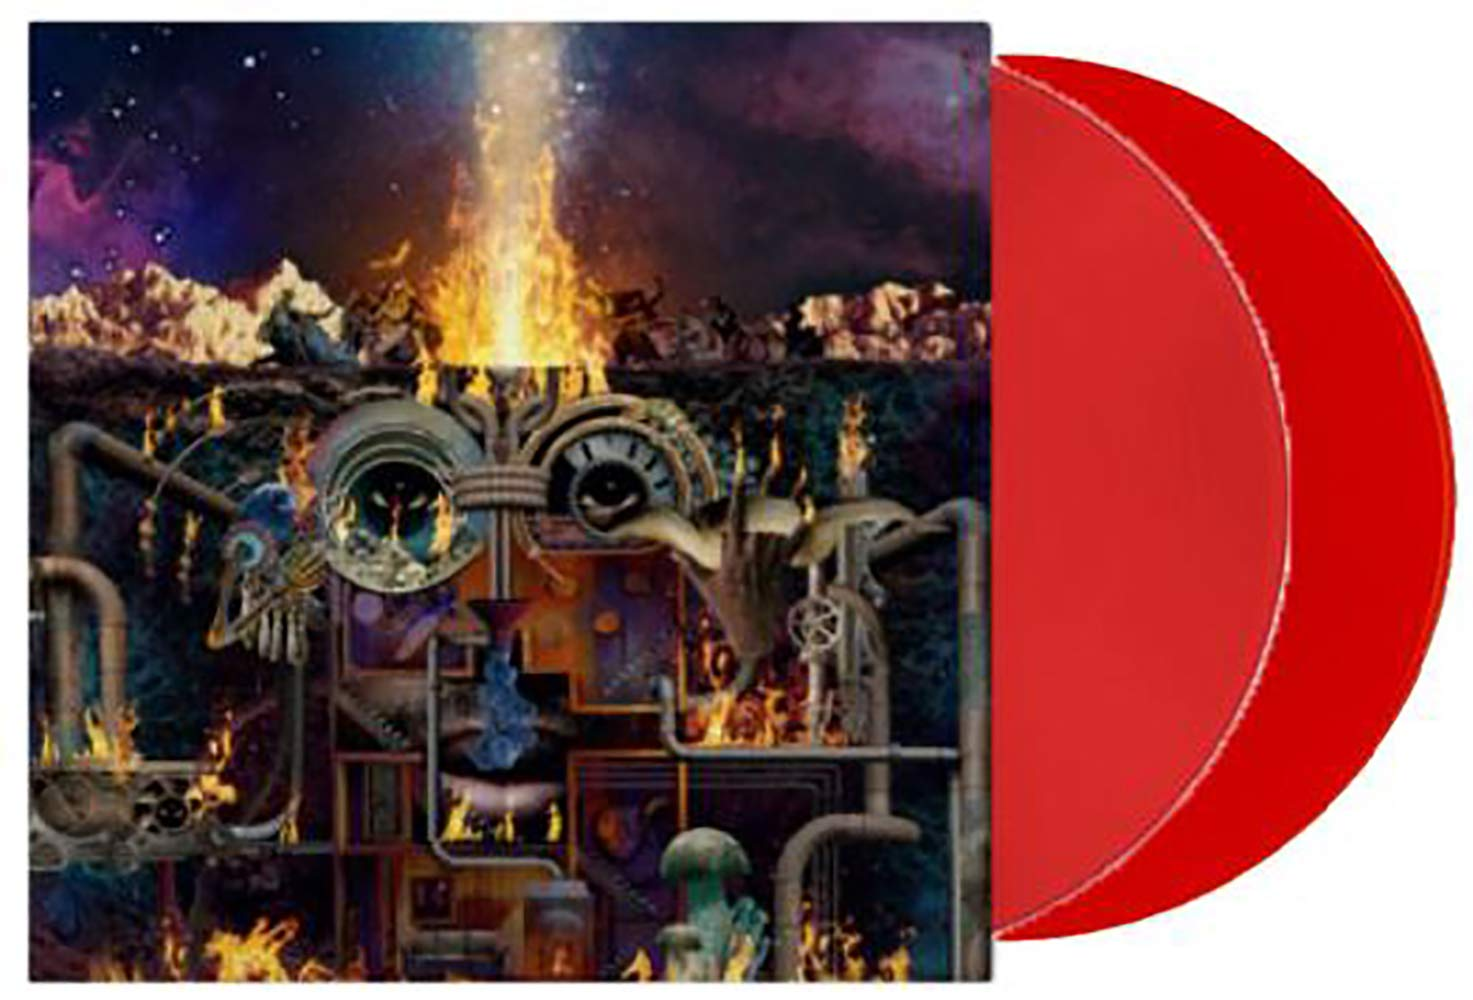 Flamagra - Exclusive Limited Edition Red 2XLP Vinyl [Condition-VG+NM] by Warp Records